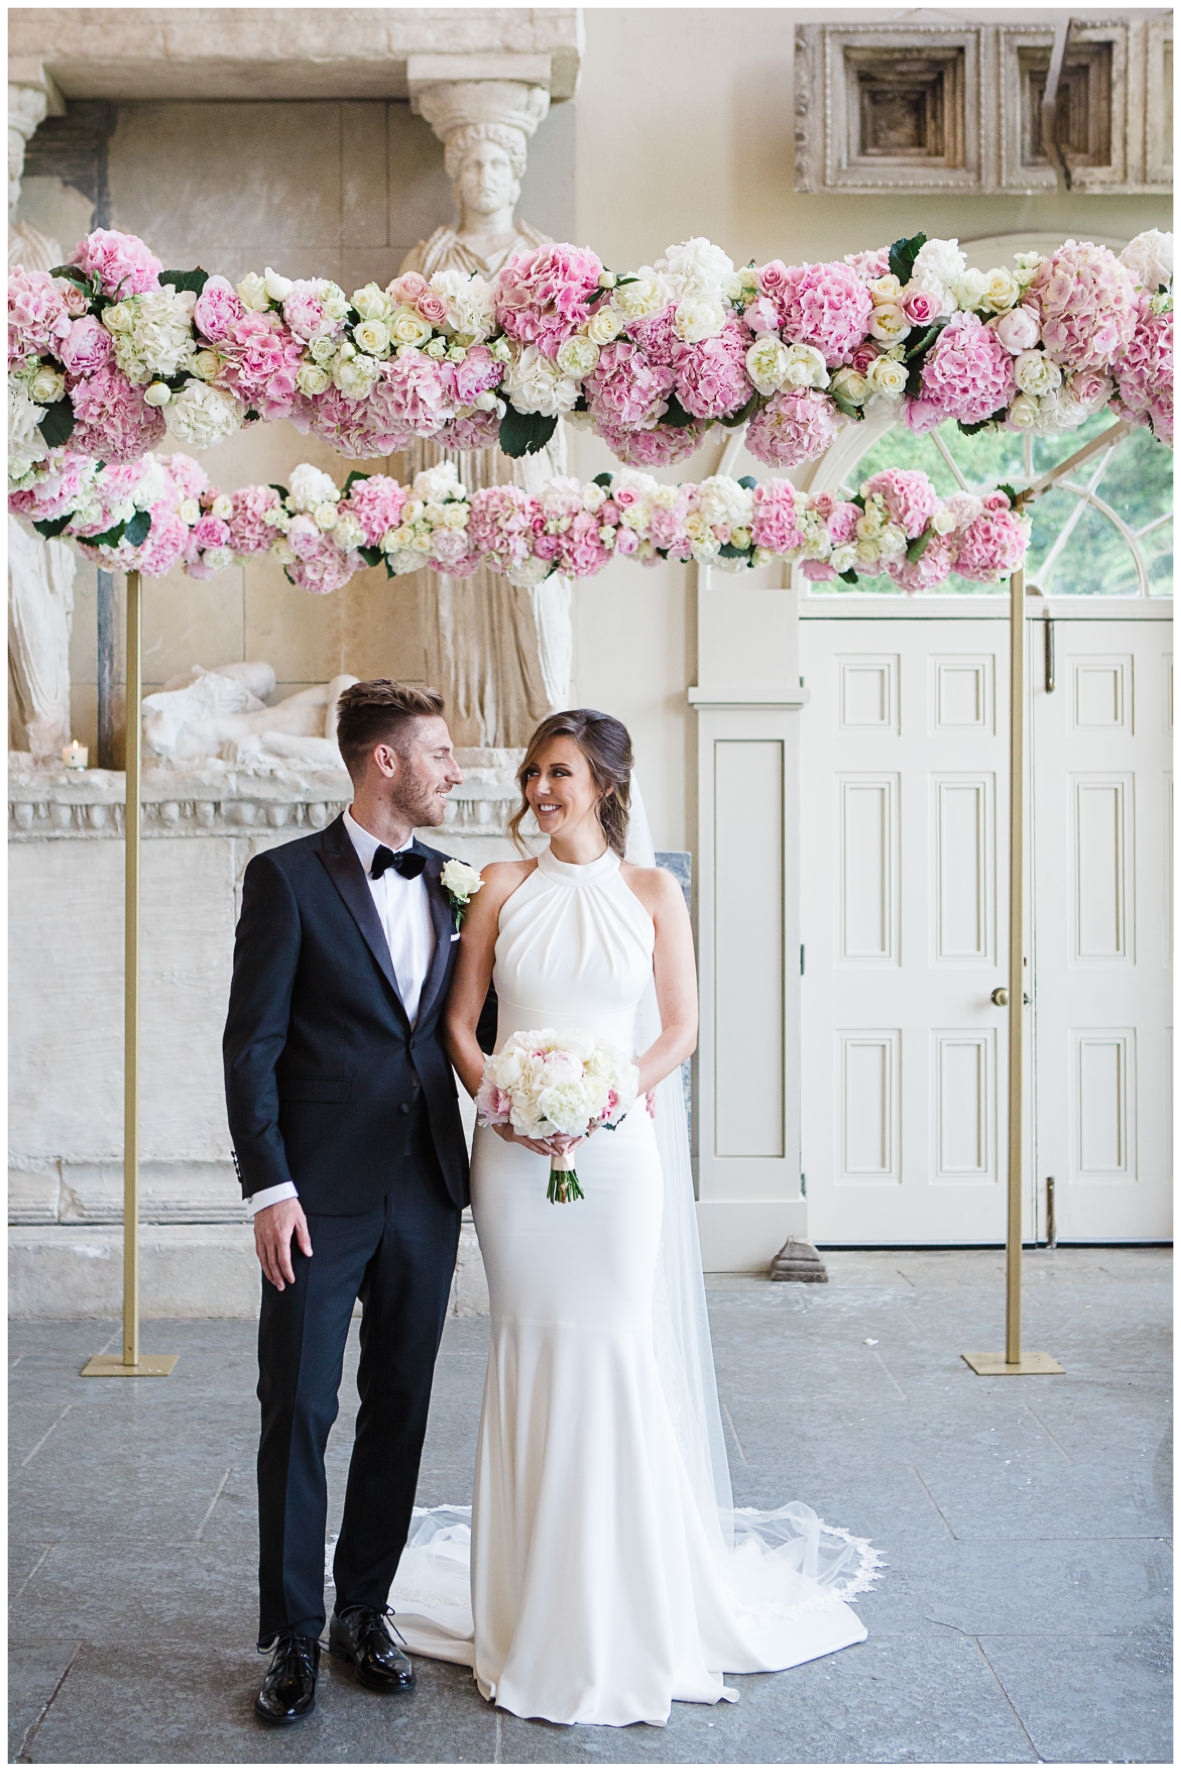 Lucy Davenport Photography, Aynhoe Park, Oxfordshire, wedding venue, Rock My Wedding, Orangery, bride and groom floral chuppah